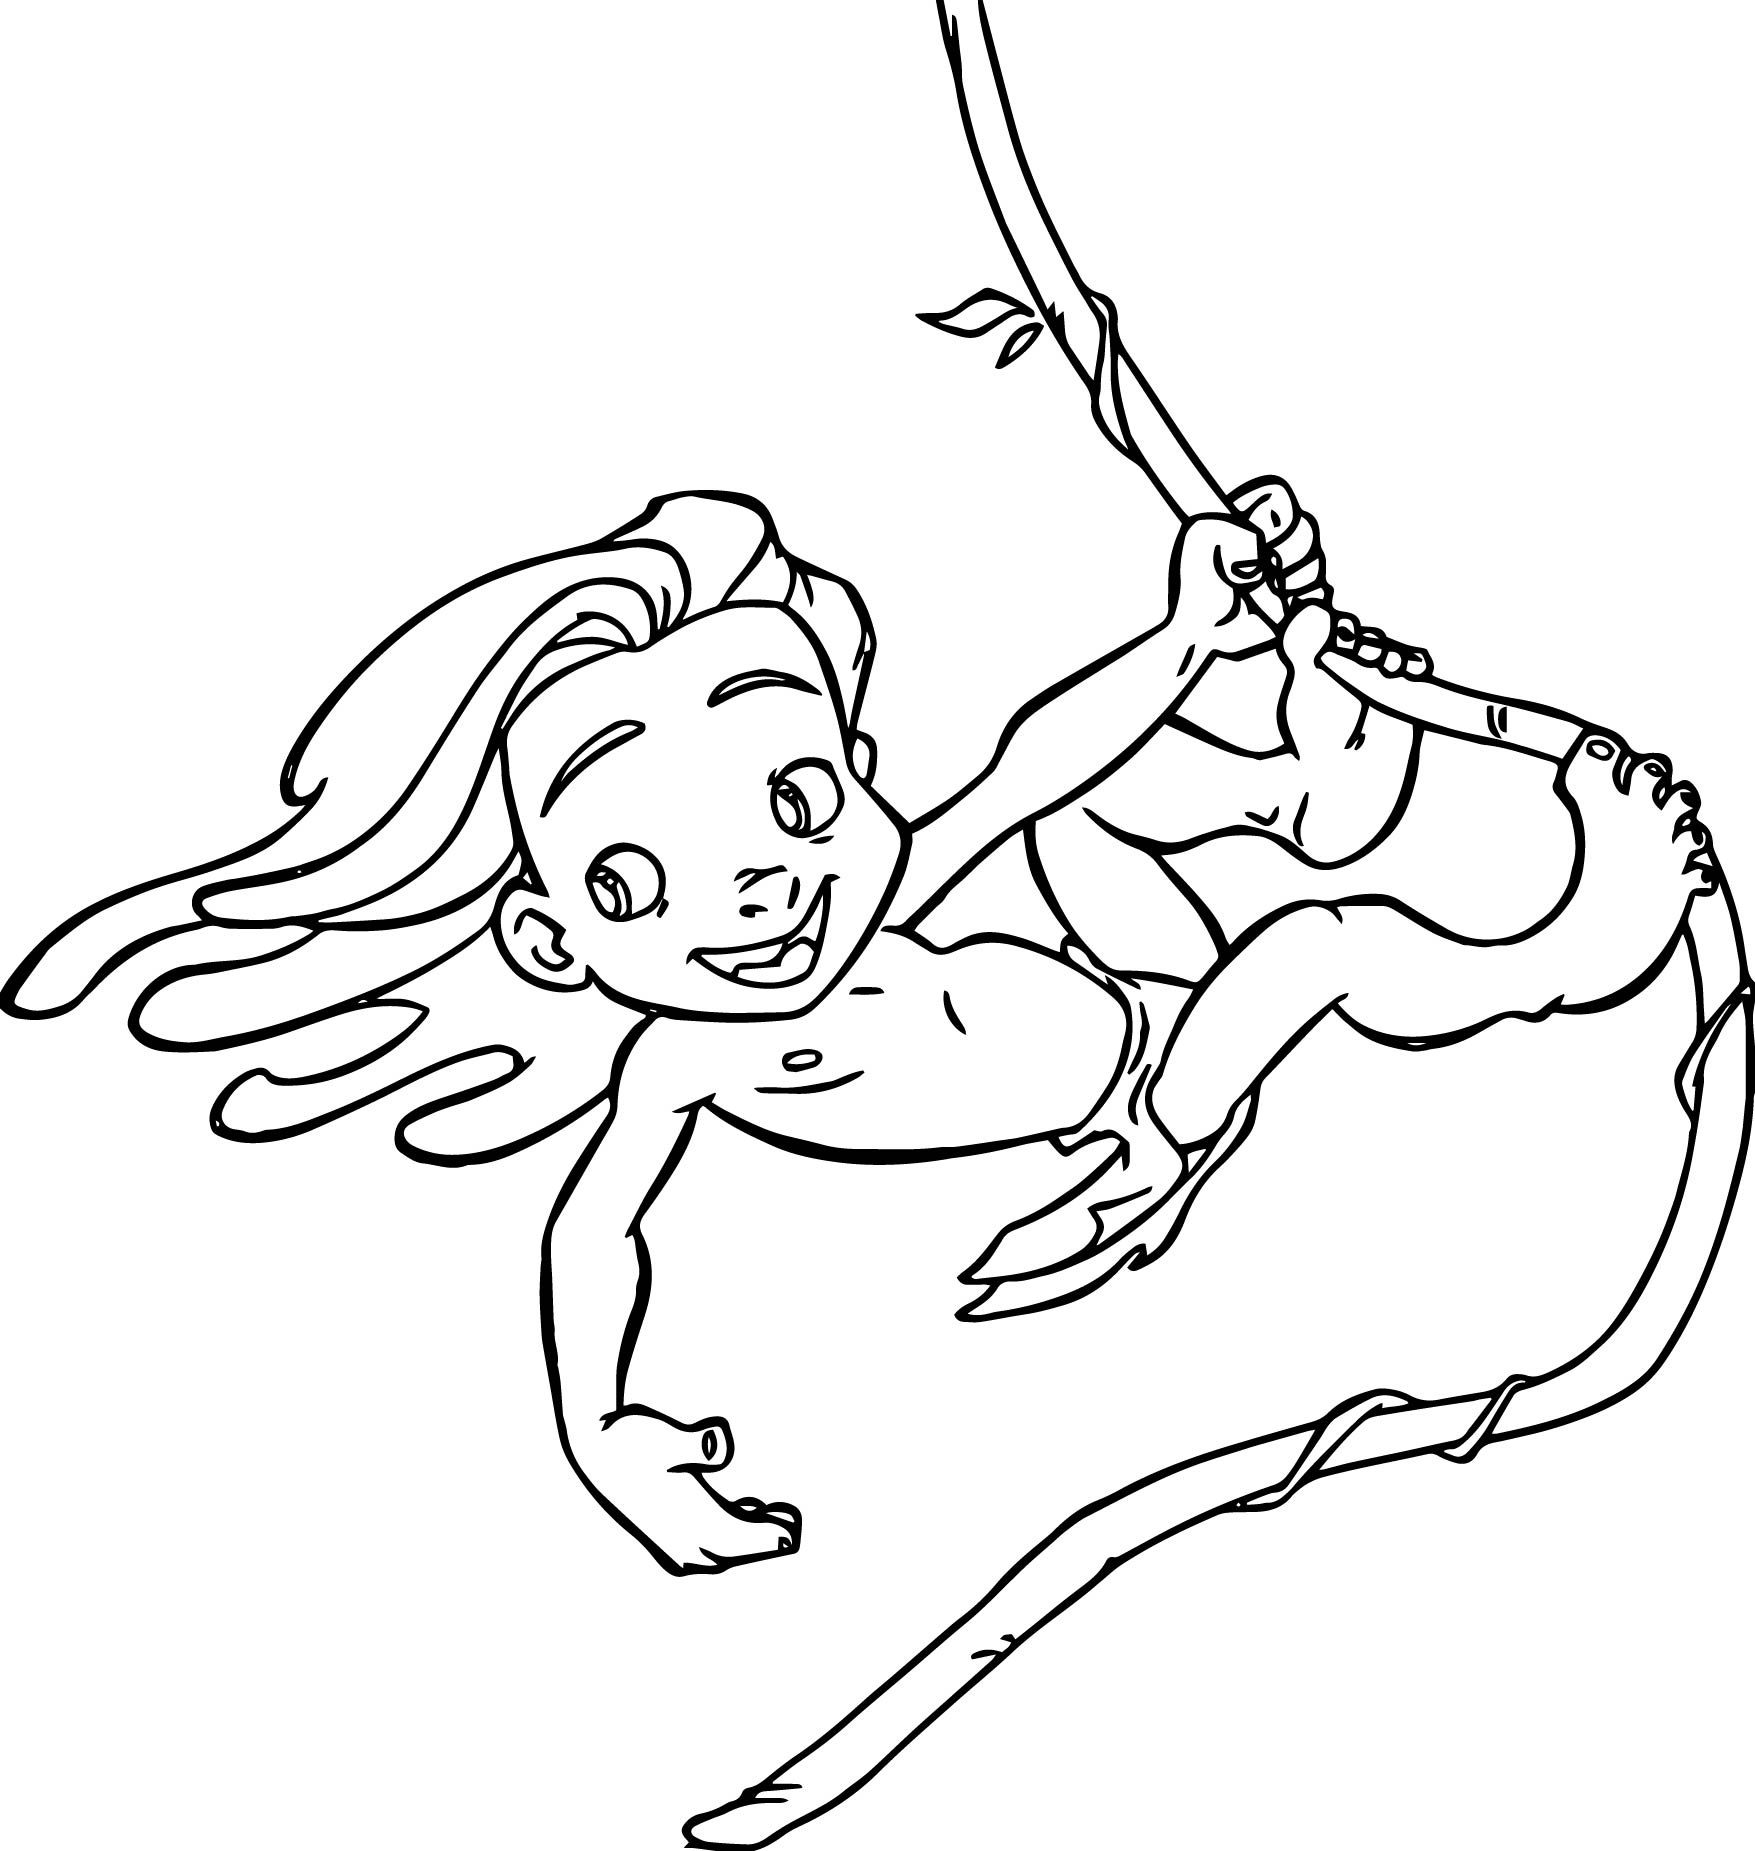 1755x1851 Tarzan And Jane Coloring Pages Wallpapers Lobaedesign Printable